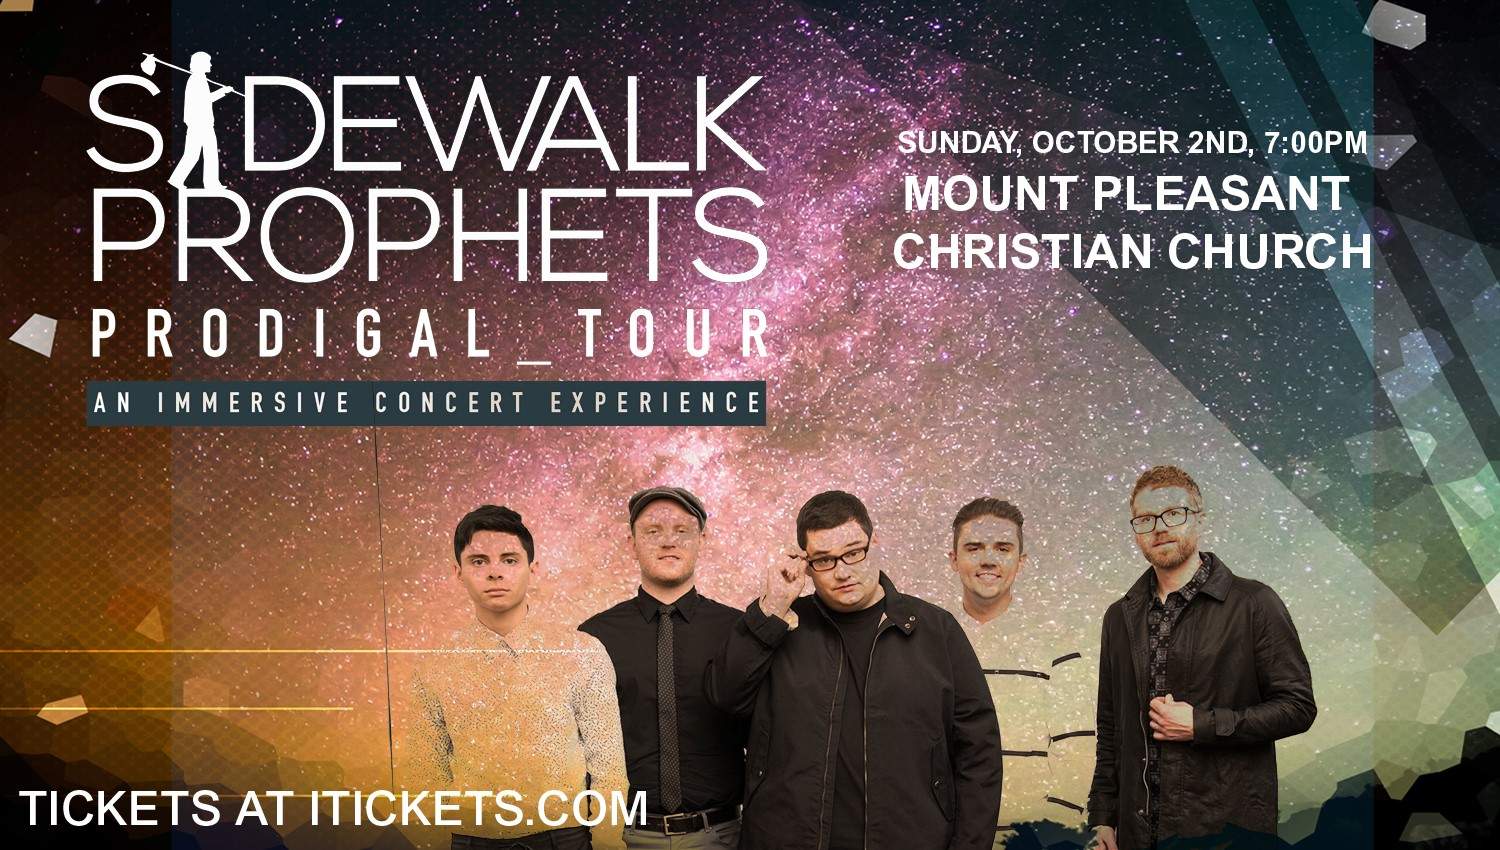 The Prodigal Tour with Sidewalk Prophets